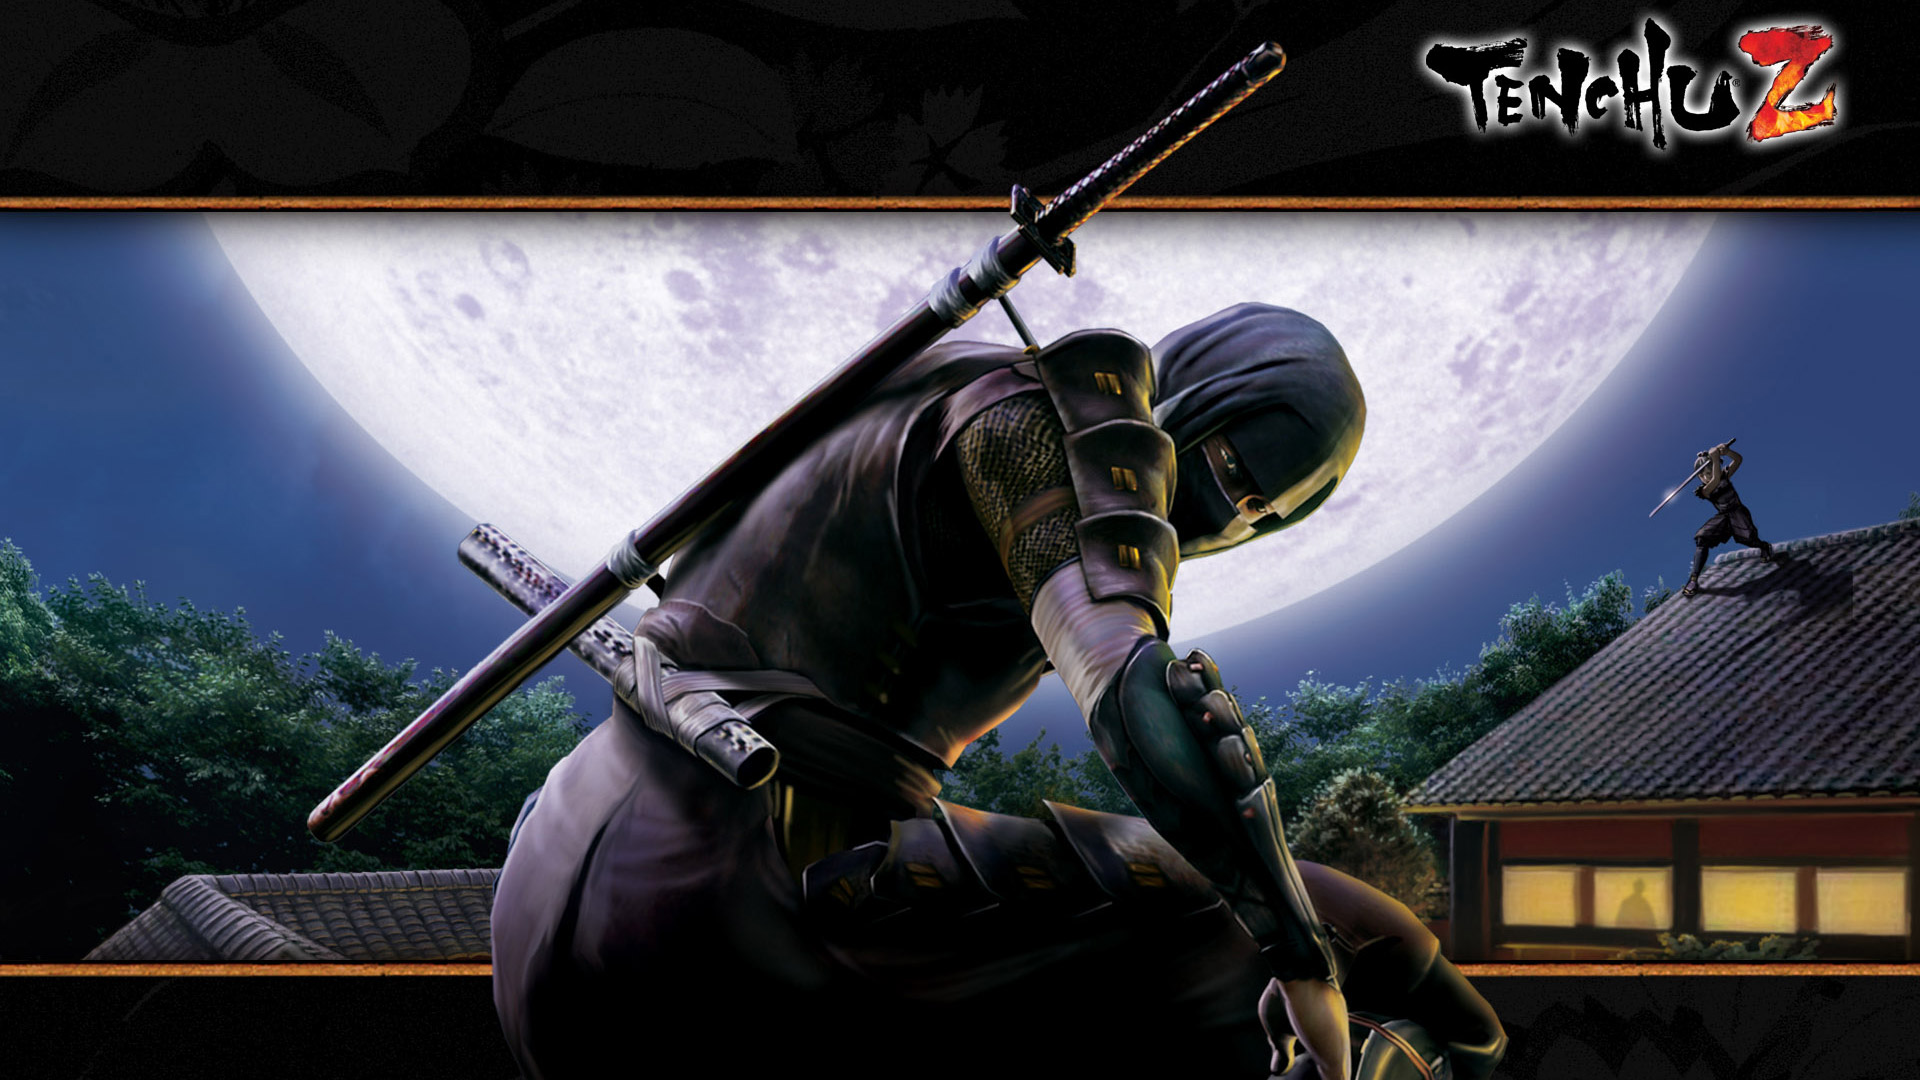 Tenchu Z Wallpaper in 1920x1080